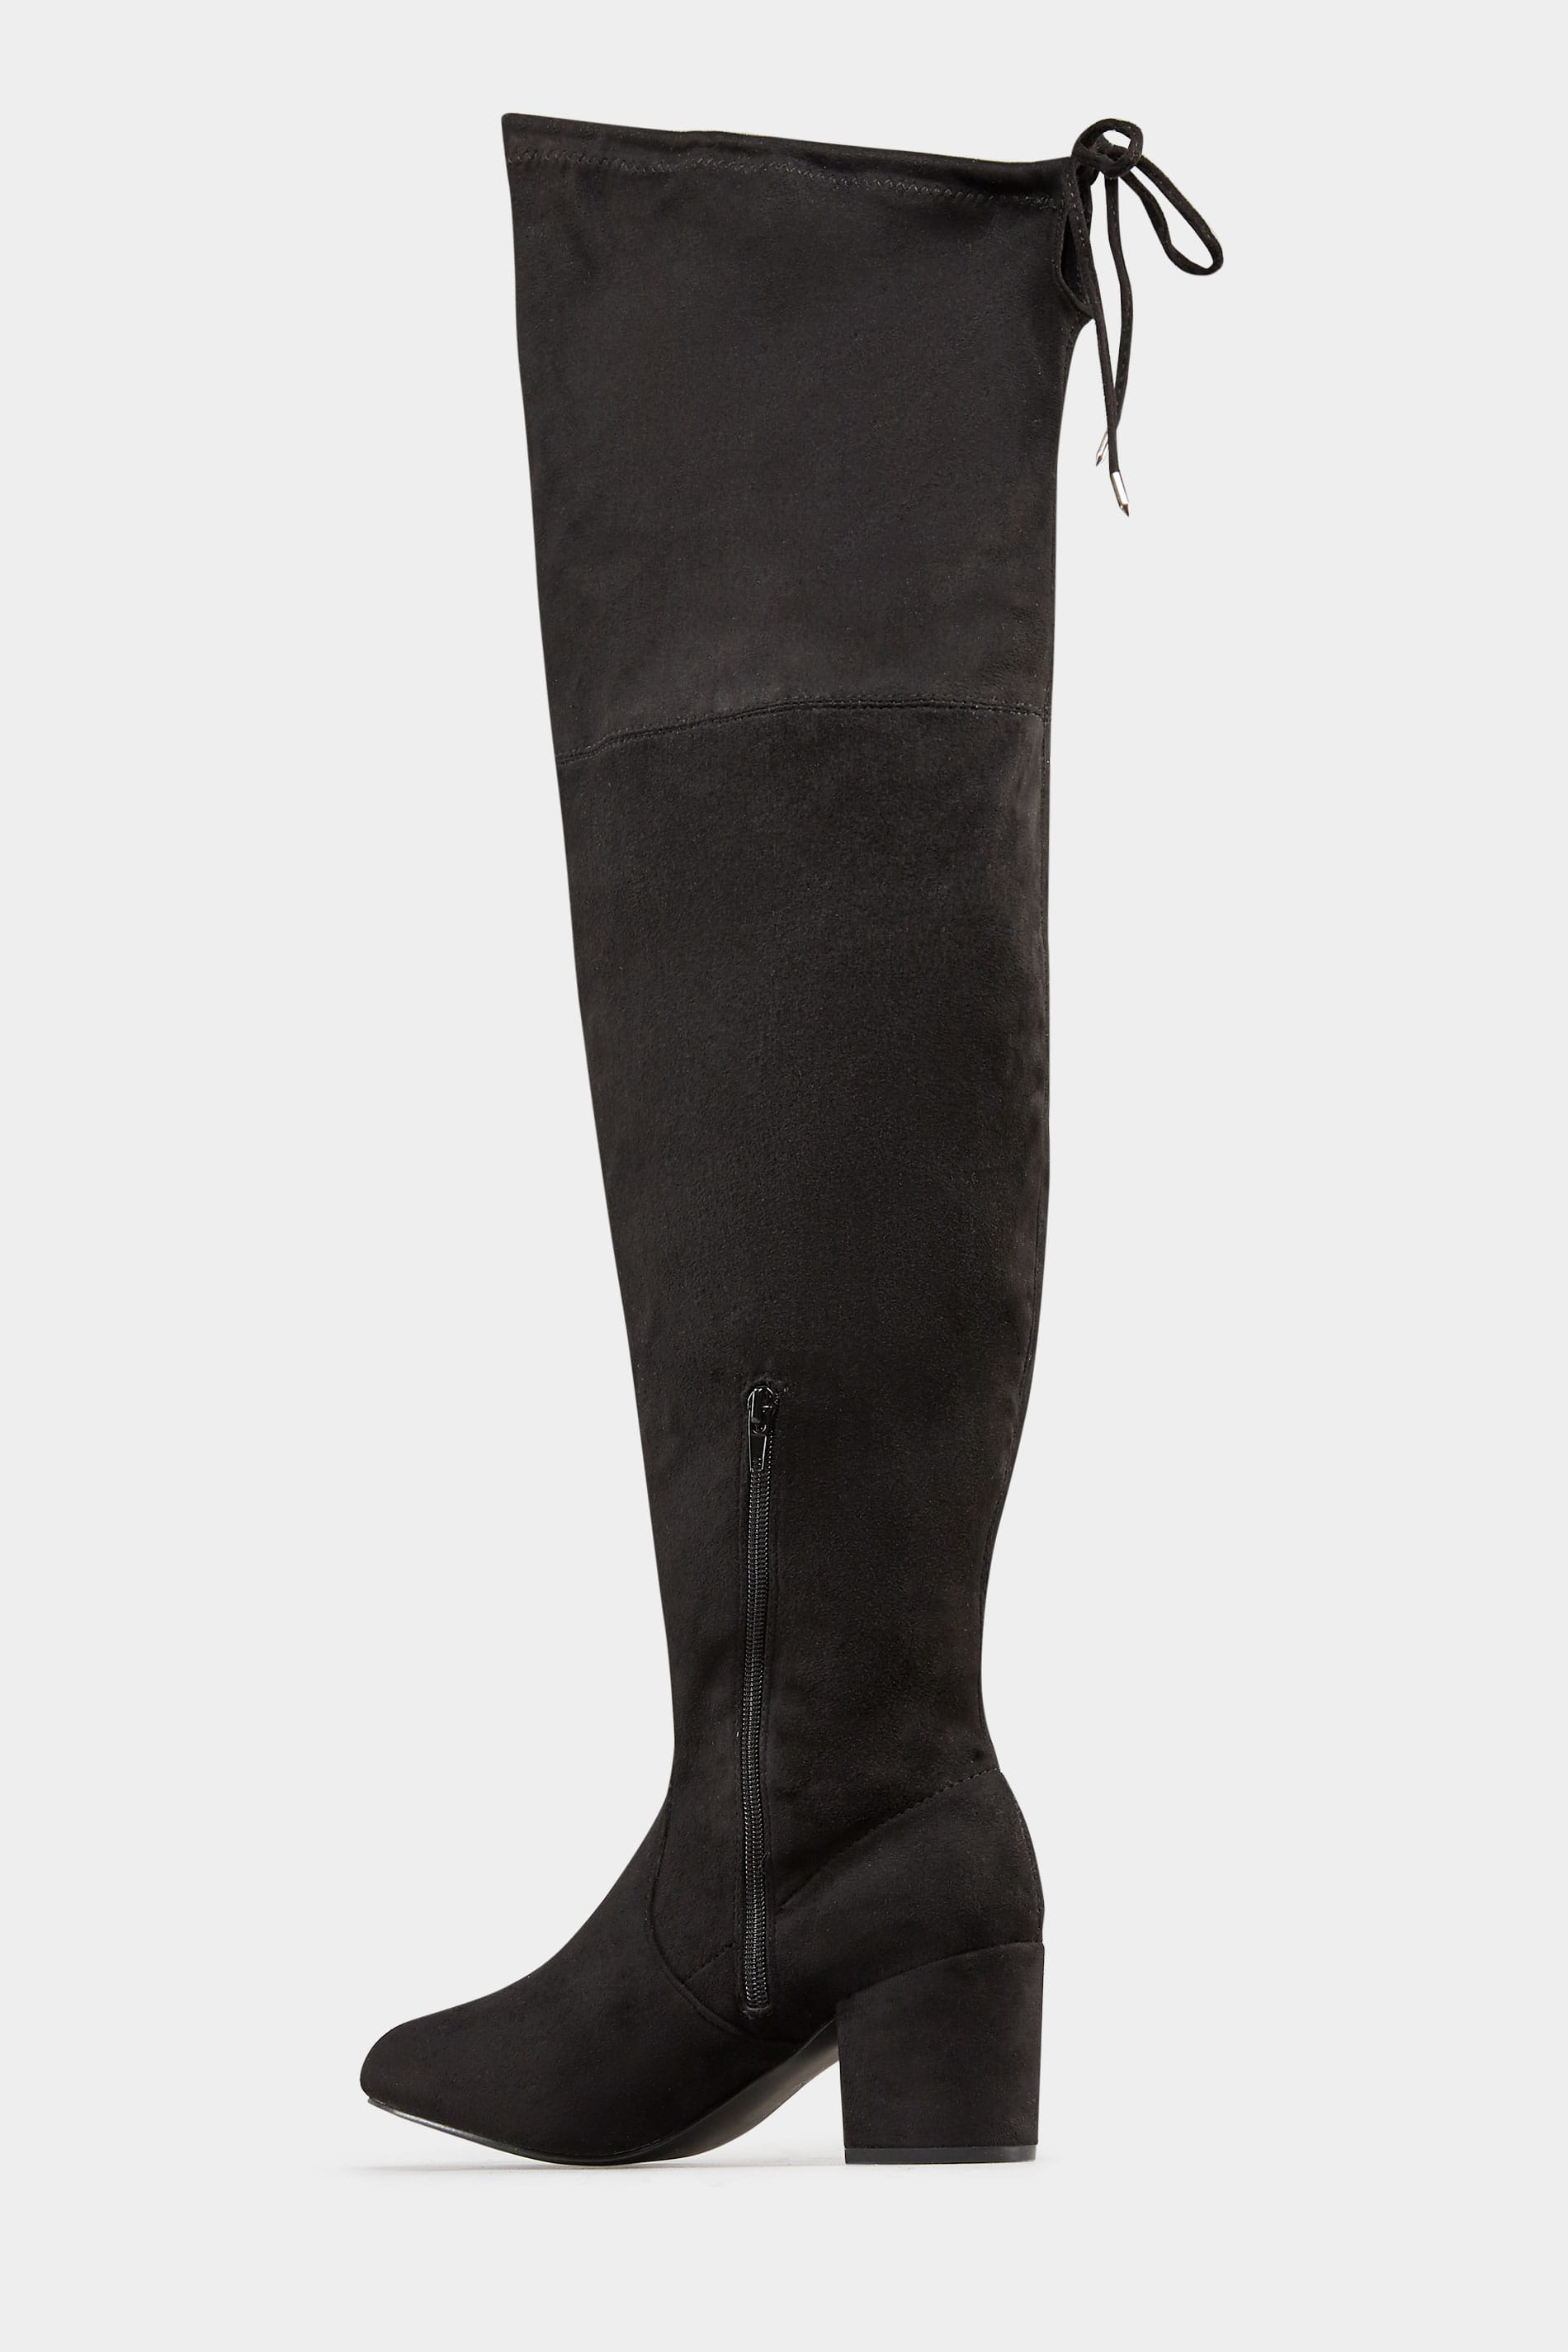 24d51319802 Black Over The Knee Boots In EEE Fit. ‹ › Loading. Hover over the images  above to enlarge